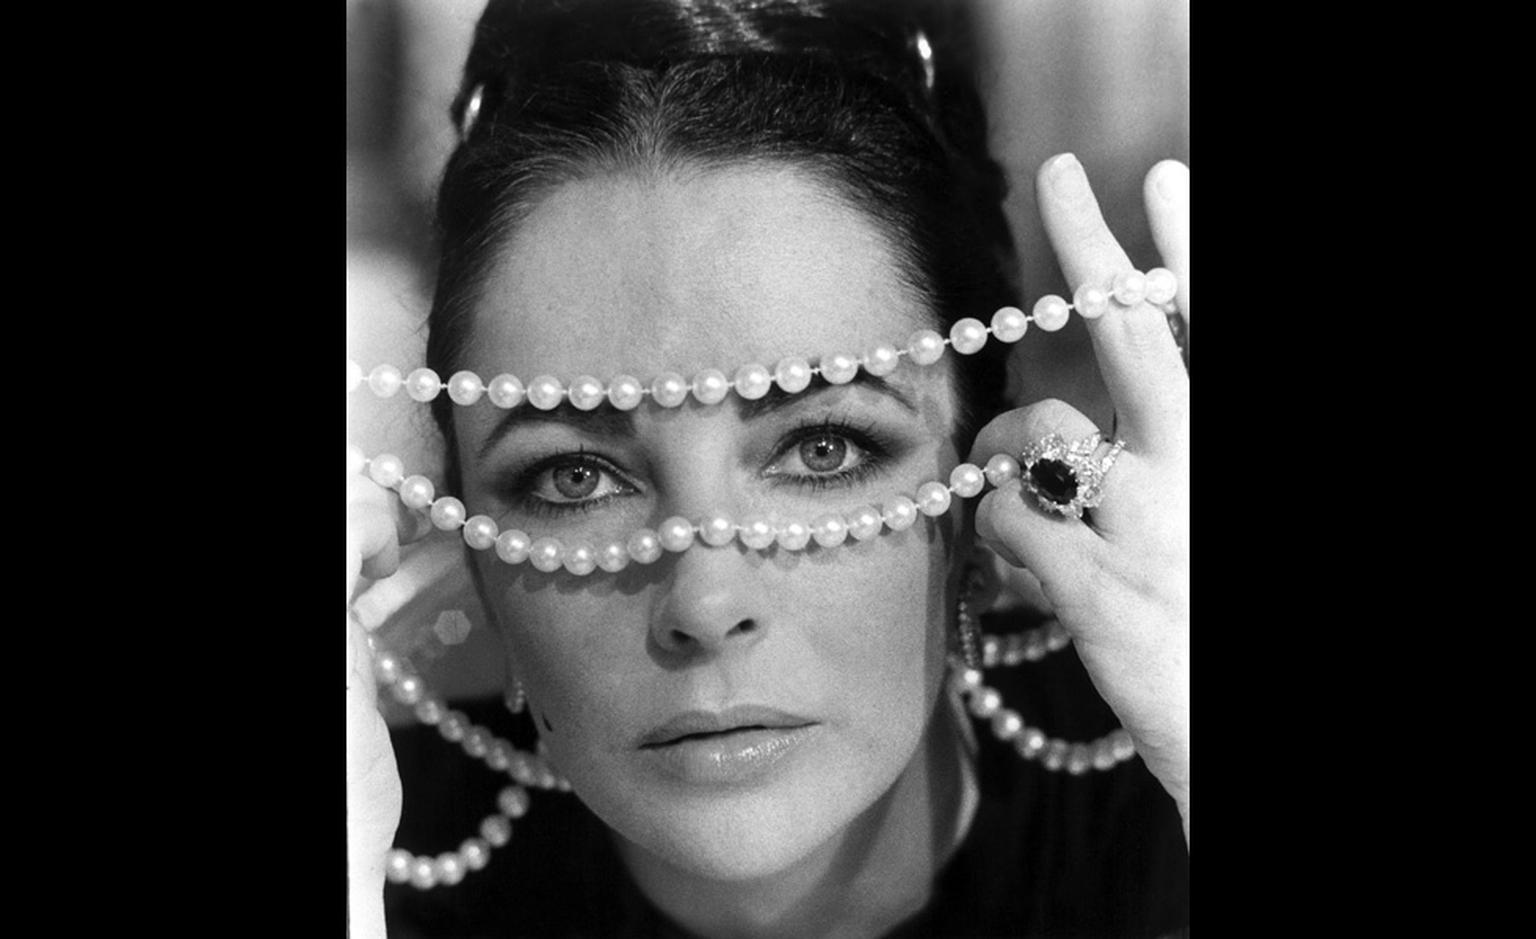 A gift from Richard Burton in 1968, Liz wears the ruby ring in this iconic shot.